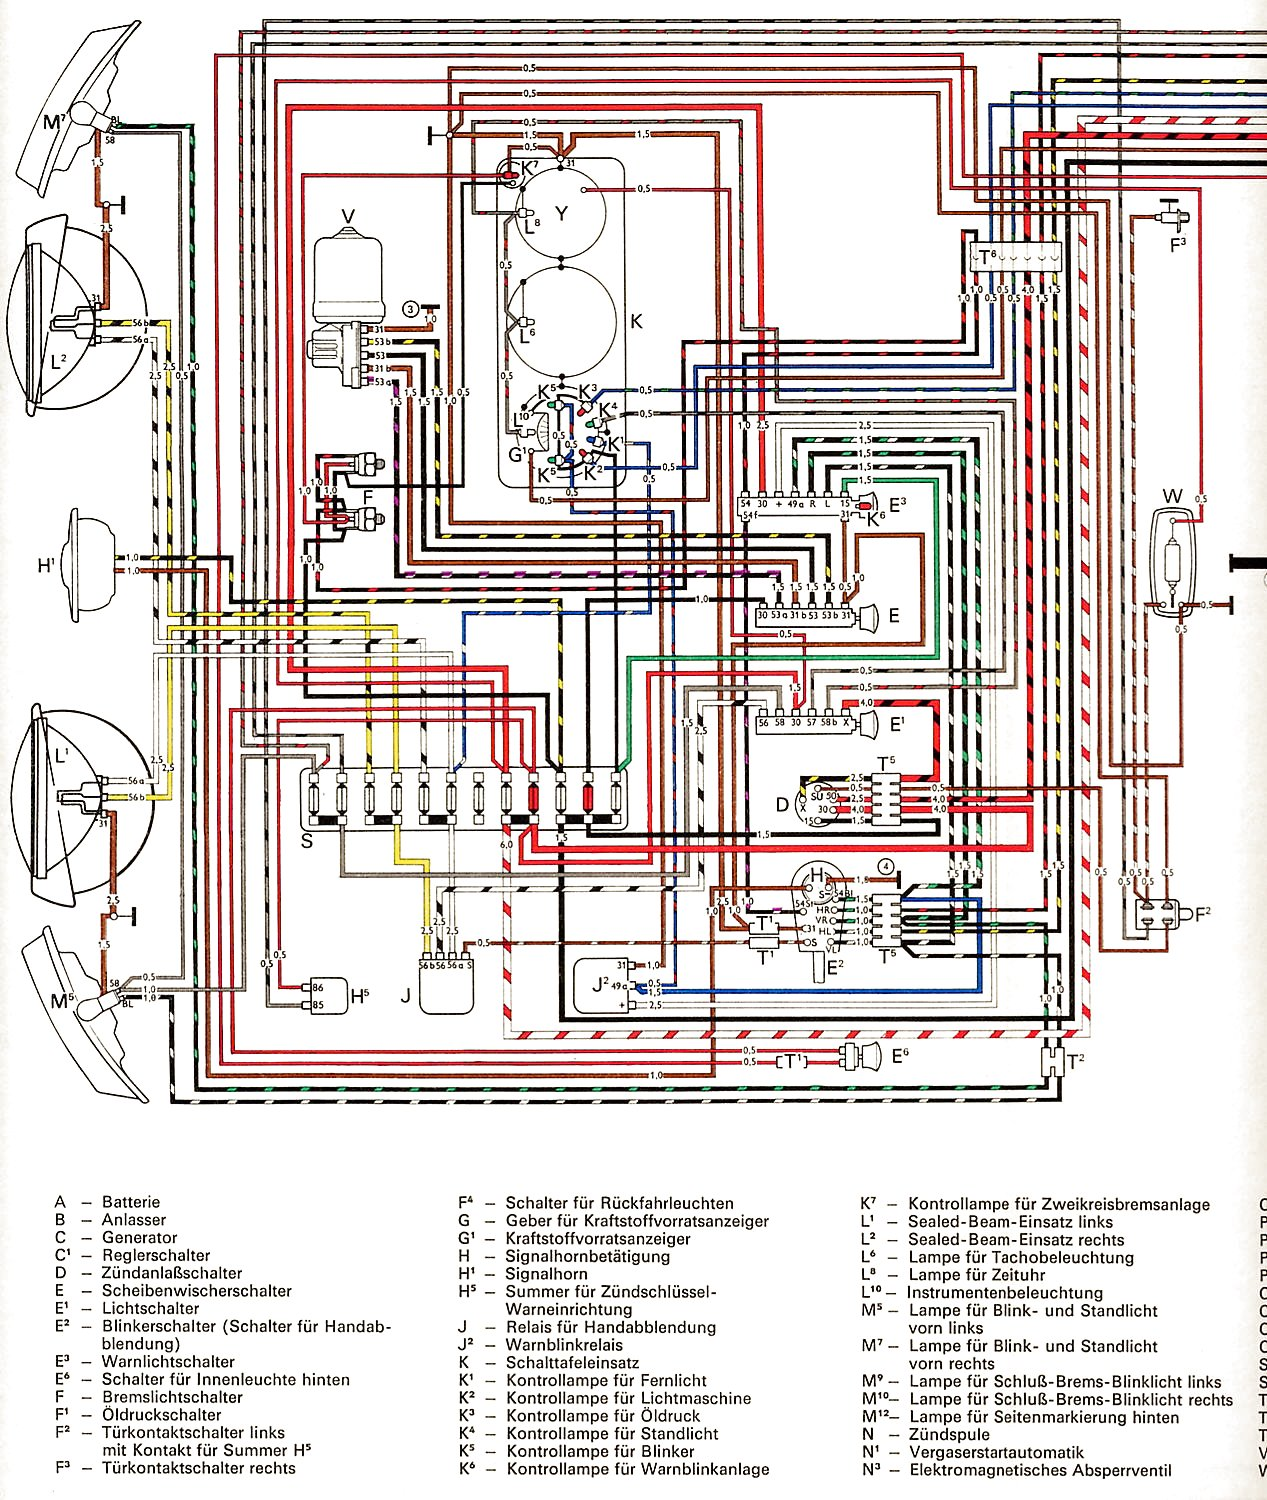 1972 Vw Bug Wiring -Master Flow H1 Humidistat Wiring Diagram | Begeboy Wiring  Diagram SourceBegeboy Wiring Diagram Source